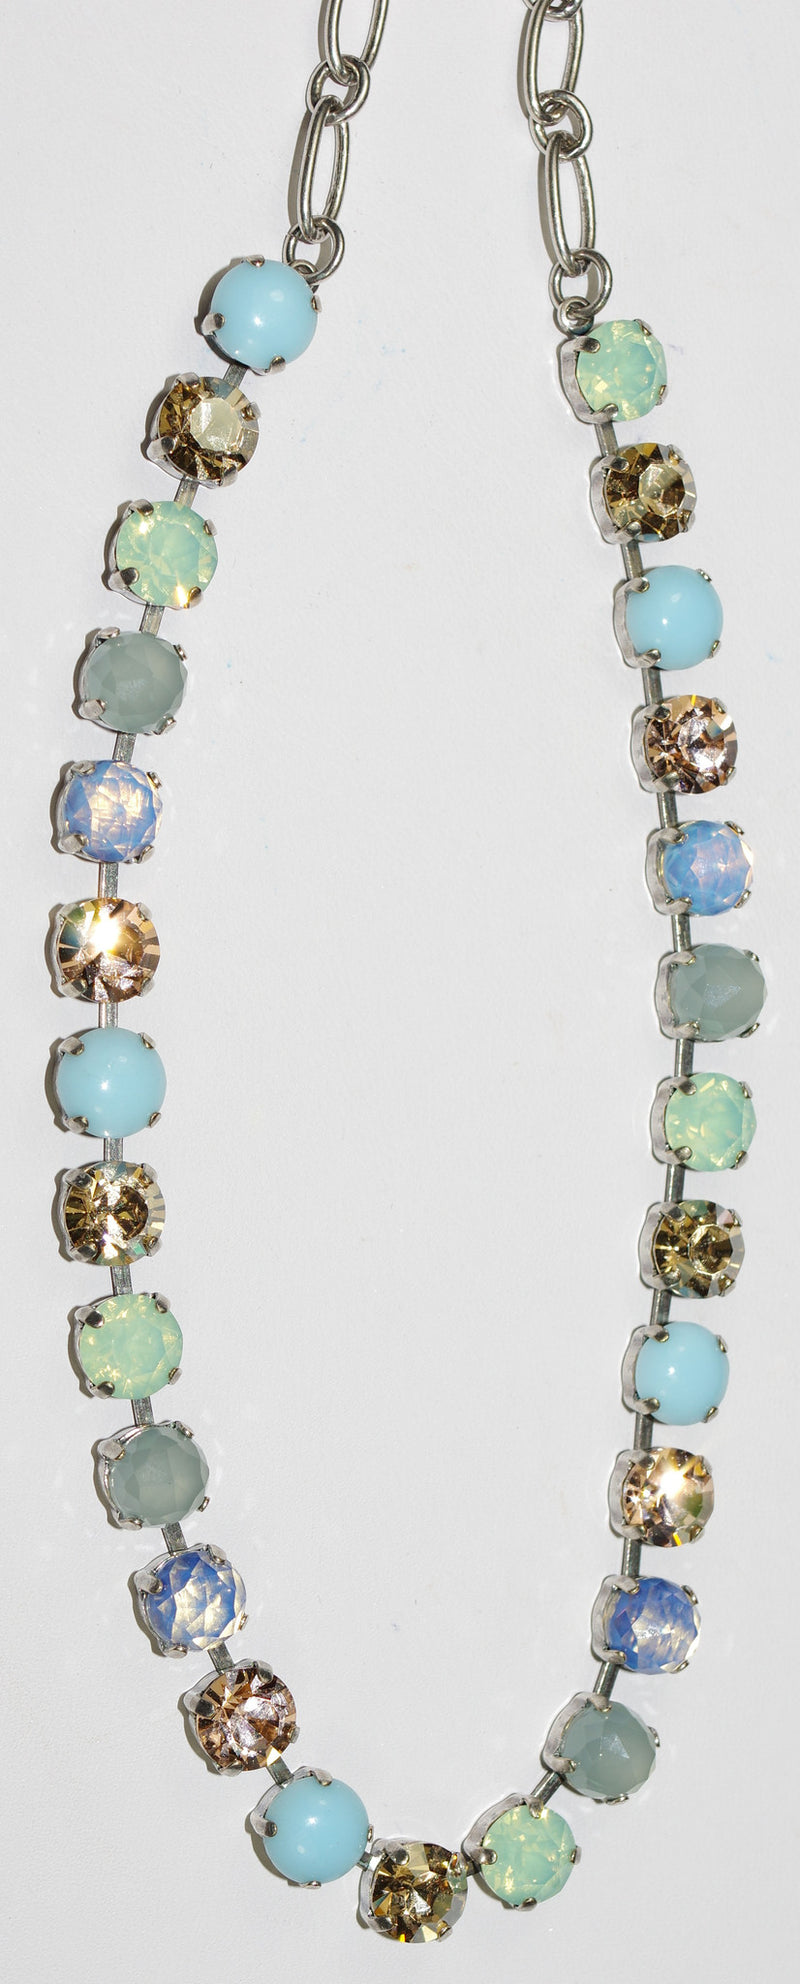 "MARIANA NECKLACE BOSPHEROUS BETTE: amber, pacific opal, clear, turq stones in silver setting, 18"" adjustable chain"